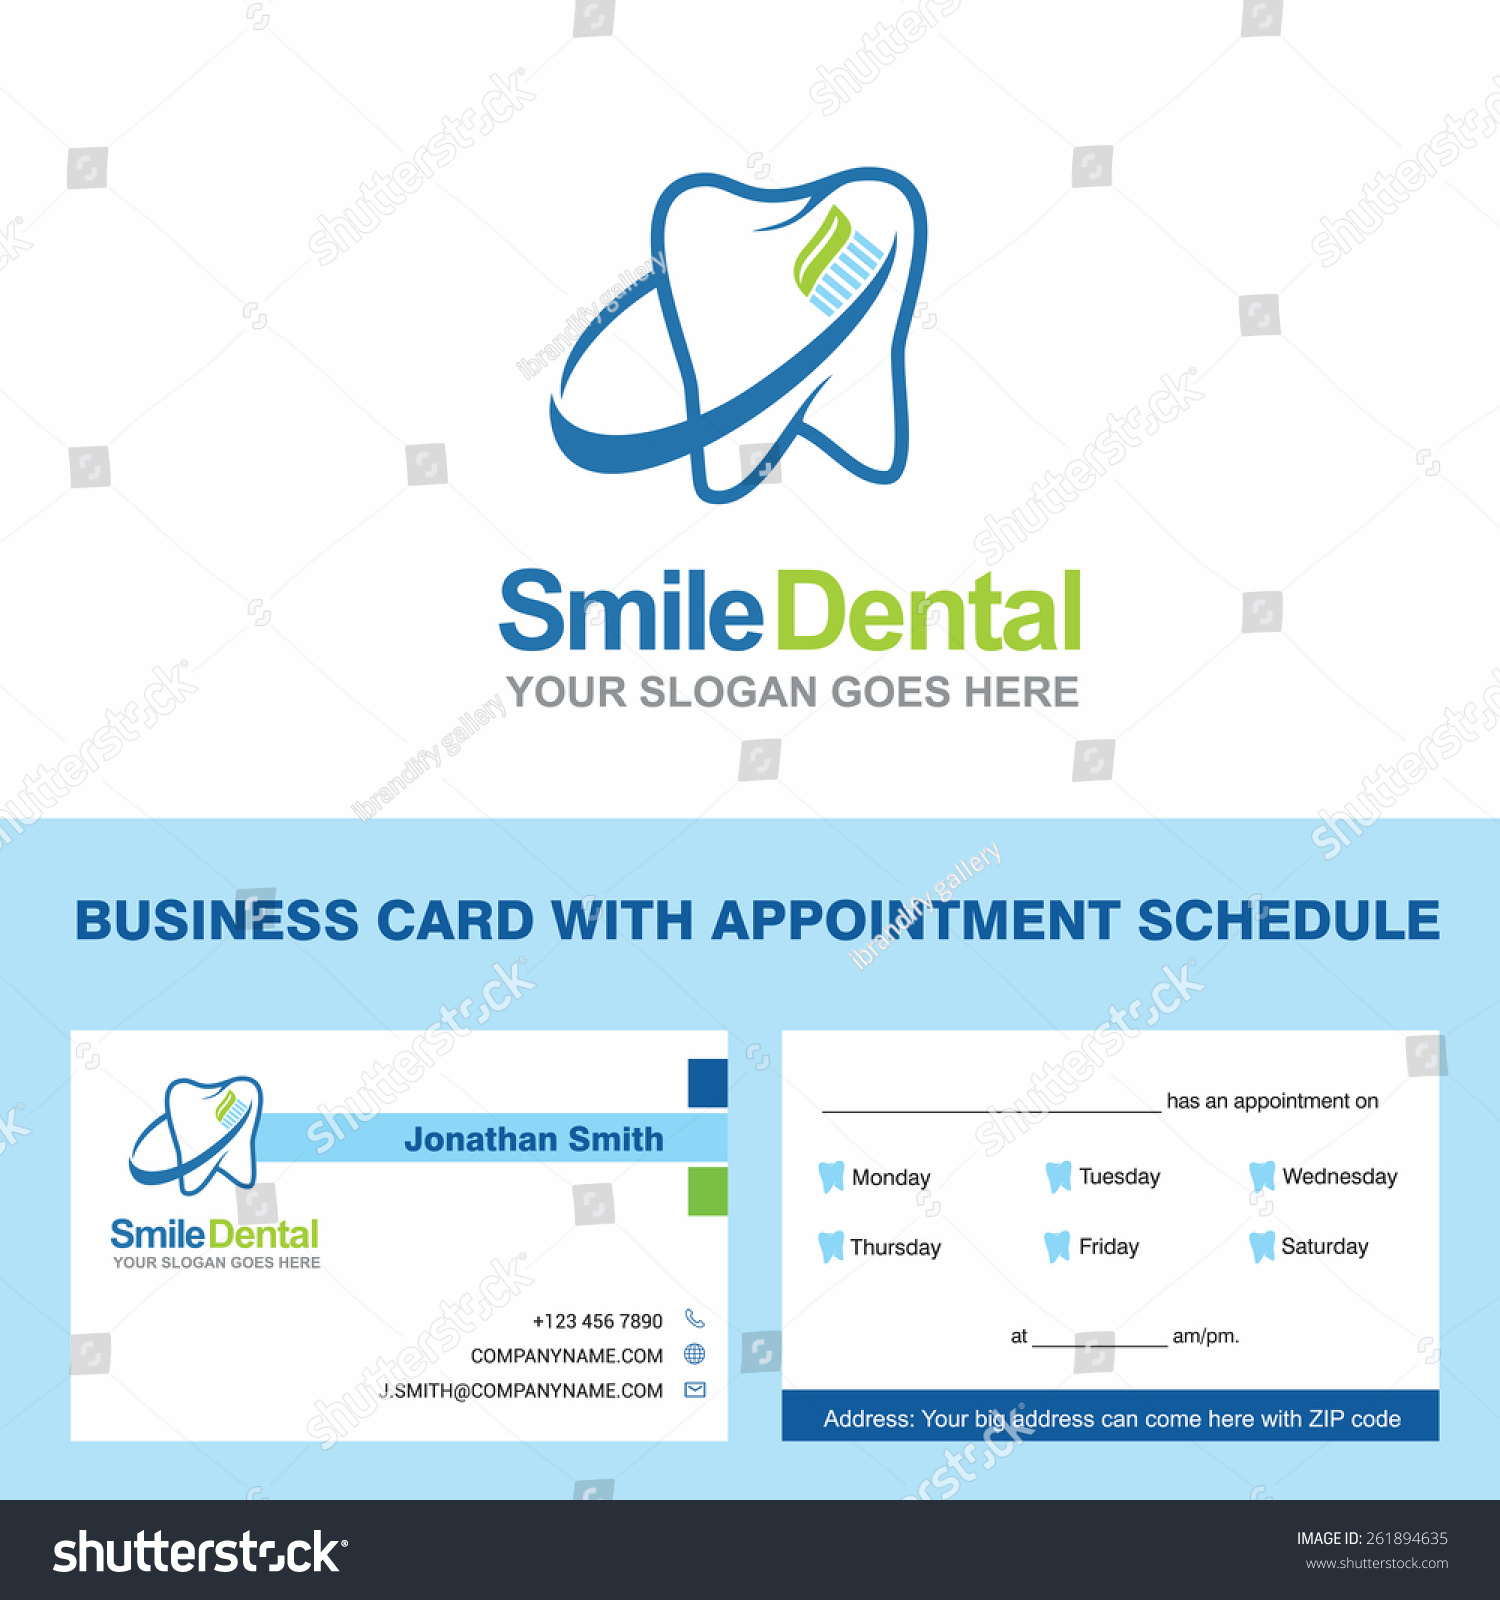 Abstract Vector Smile Dental Identity Concept Stock Vector ...